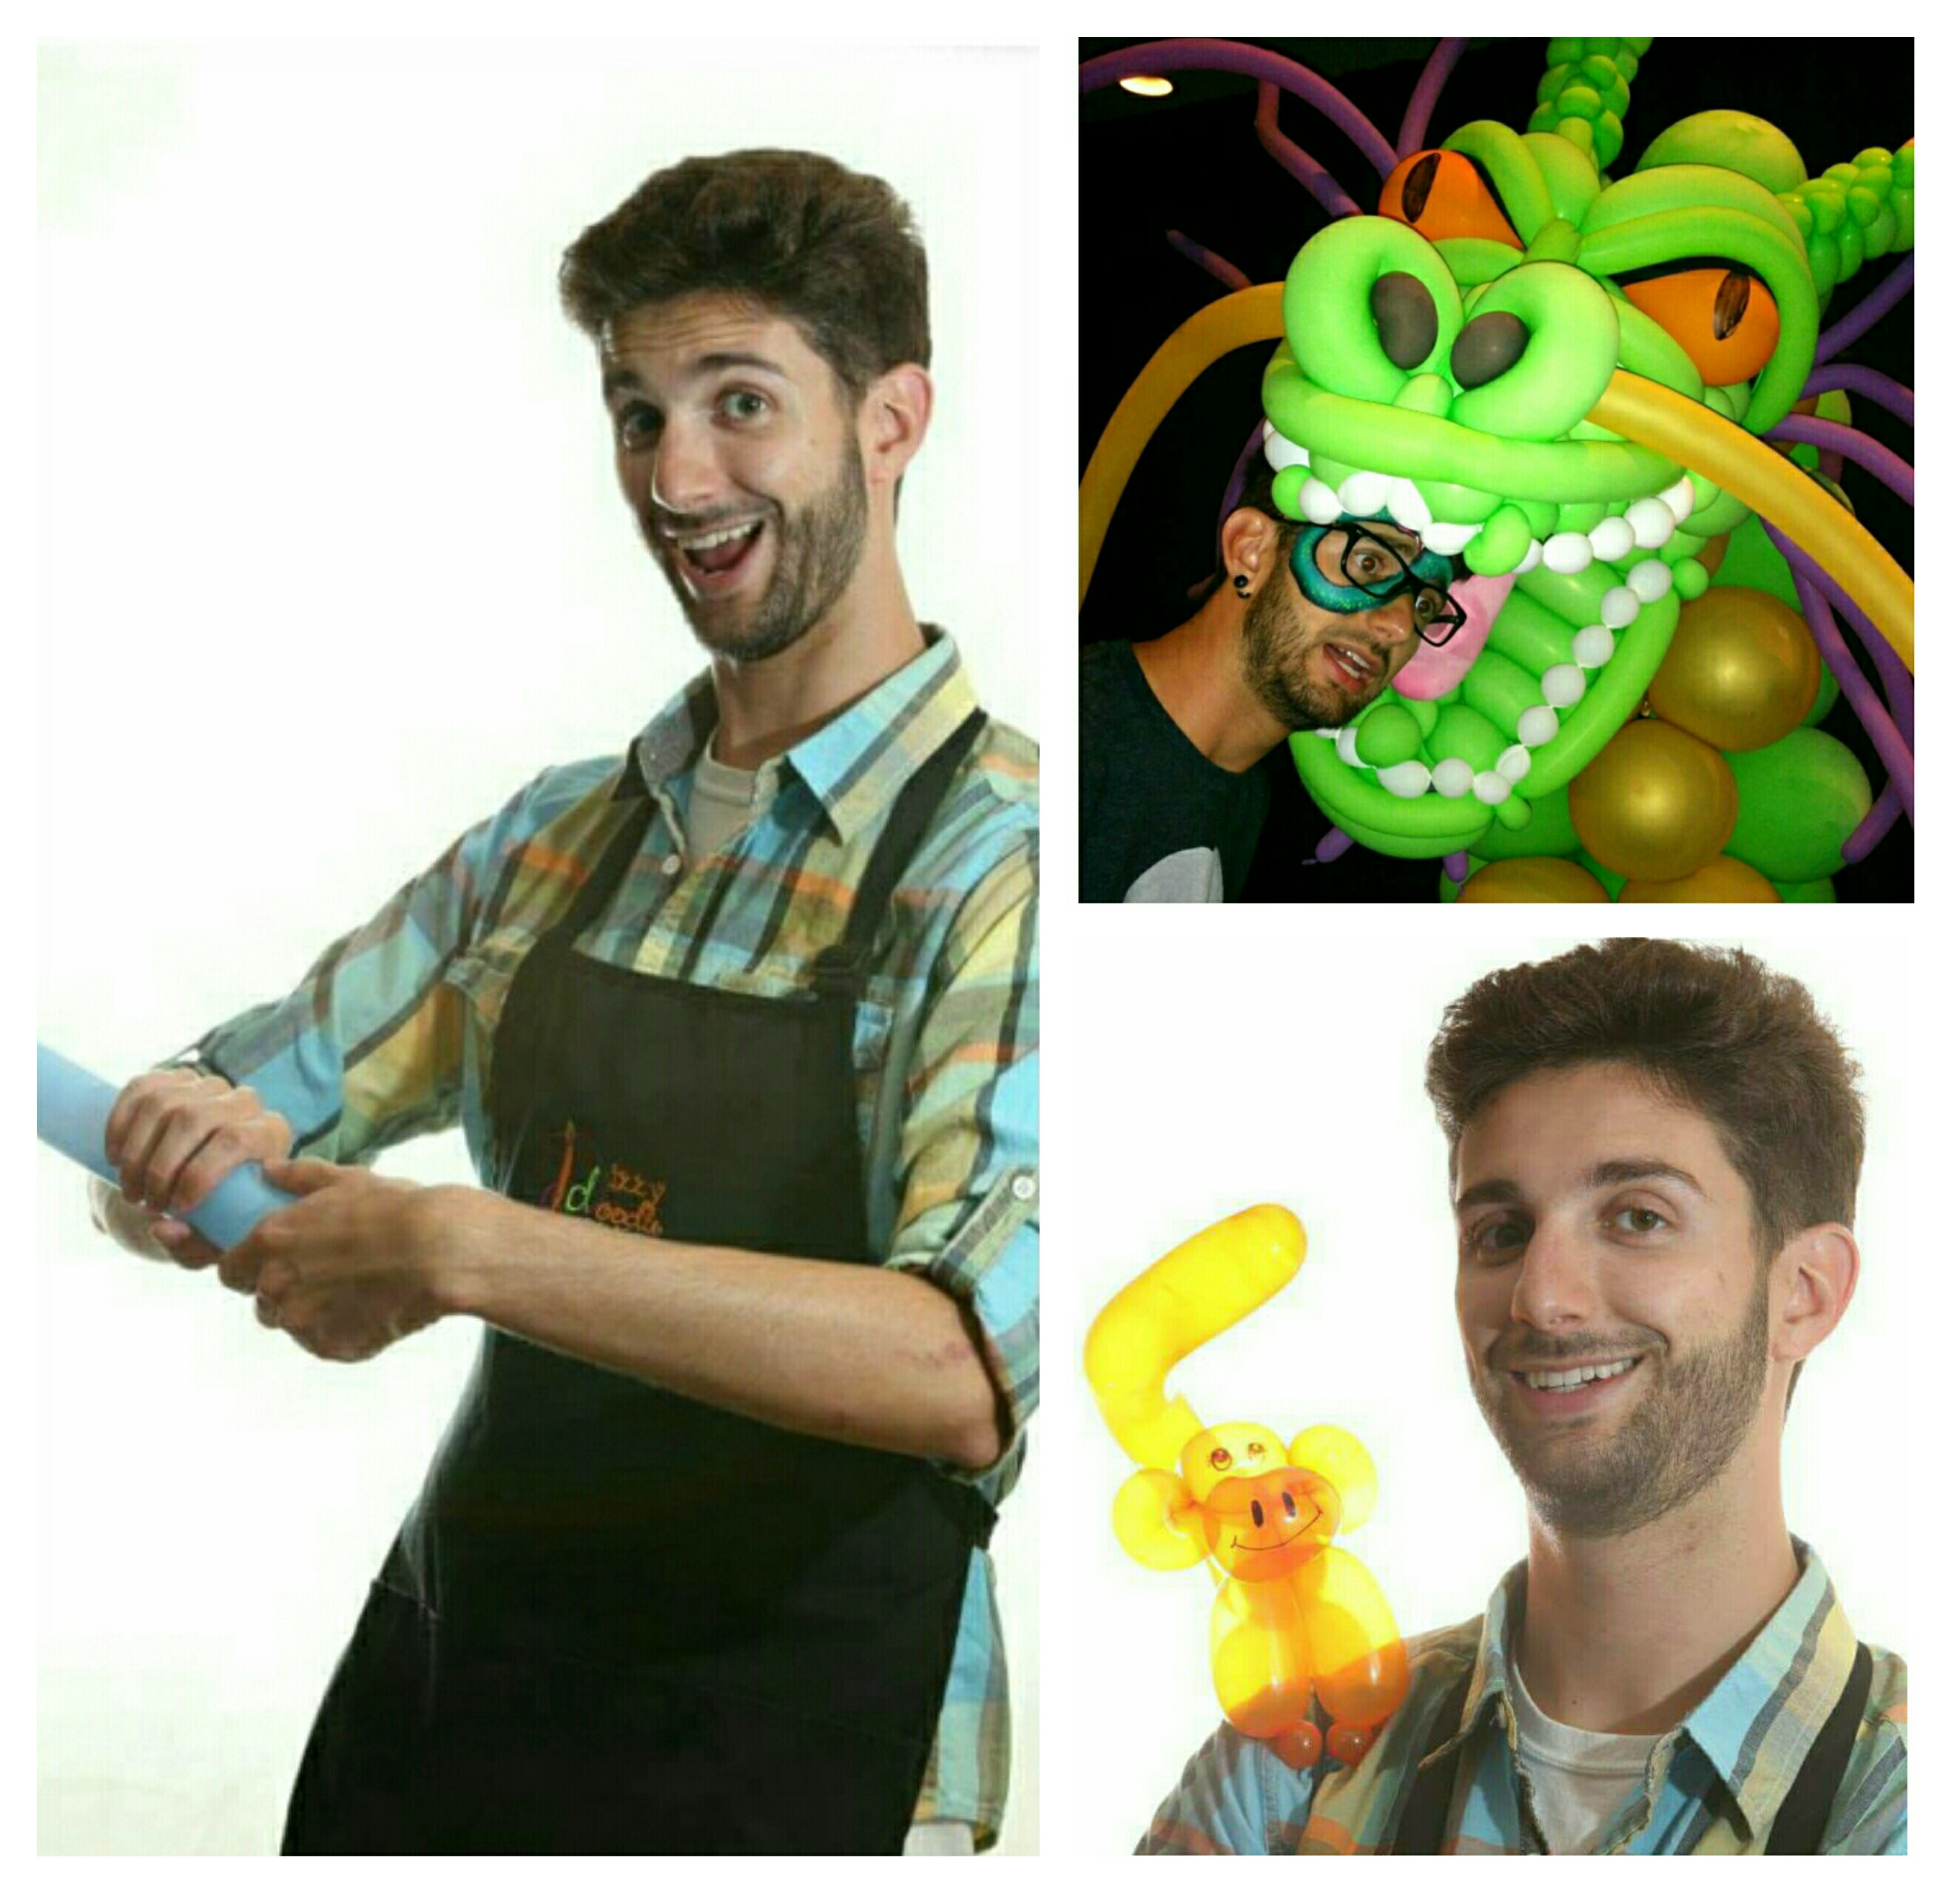 Chris Whisker the Balloon Twister is (you guessed it!) our balloon twister and balloon decor maker.